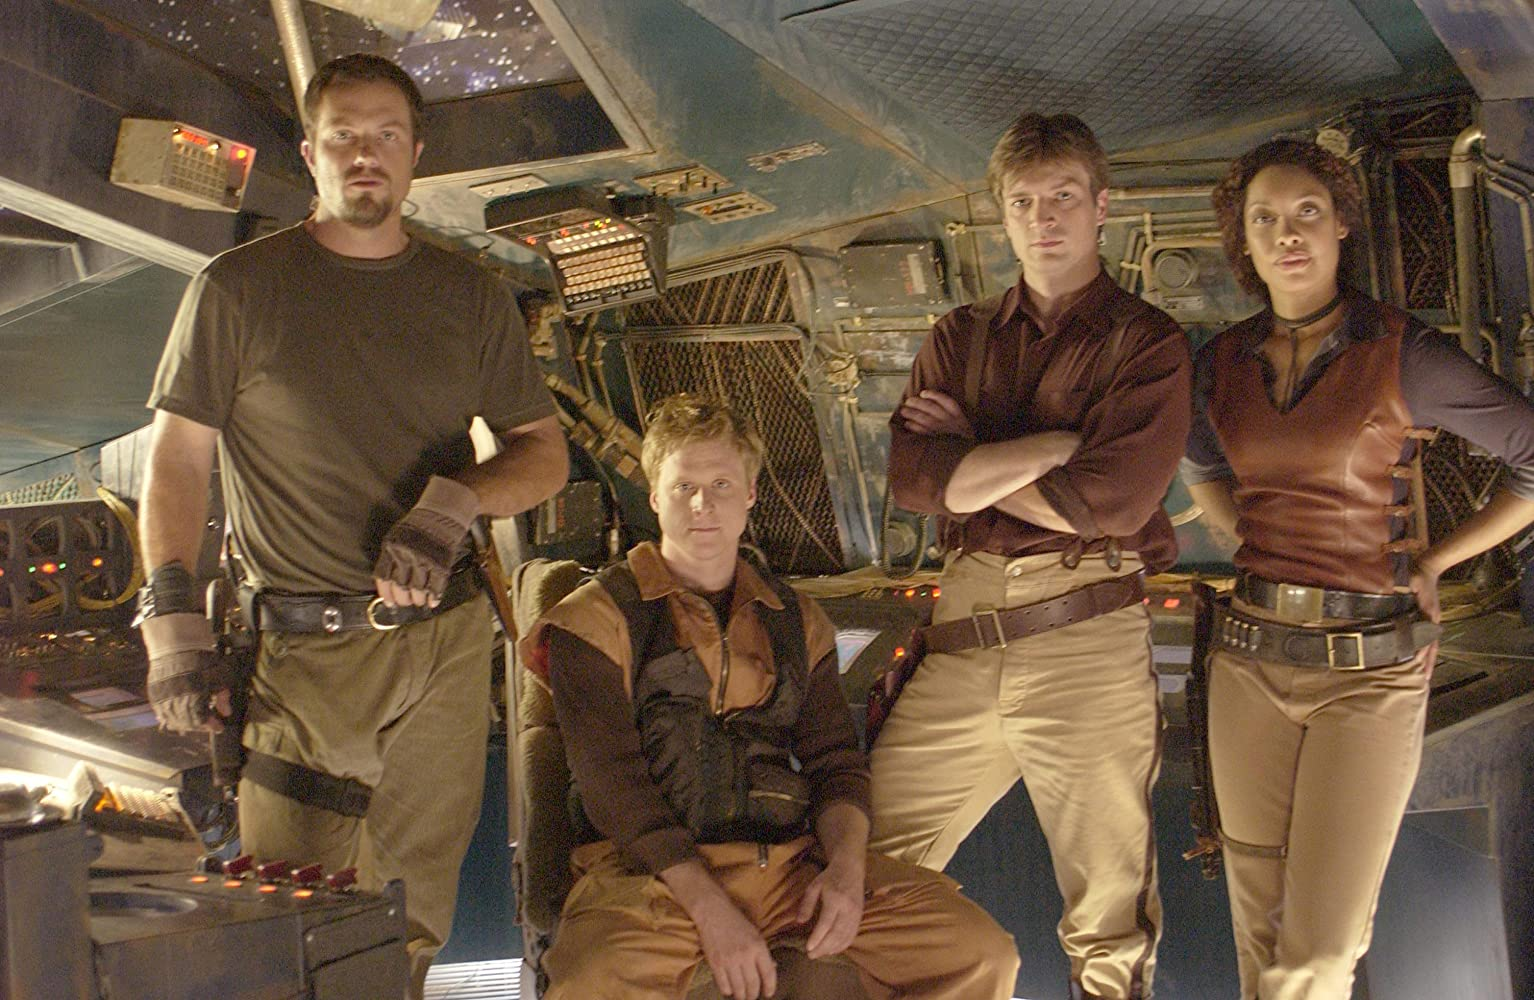 Adam Baldwin, Nathan Fillion, Gina Torres, and Alan Tudyk in Firefly (2002)